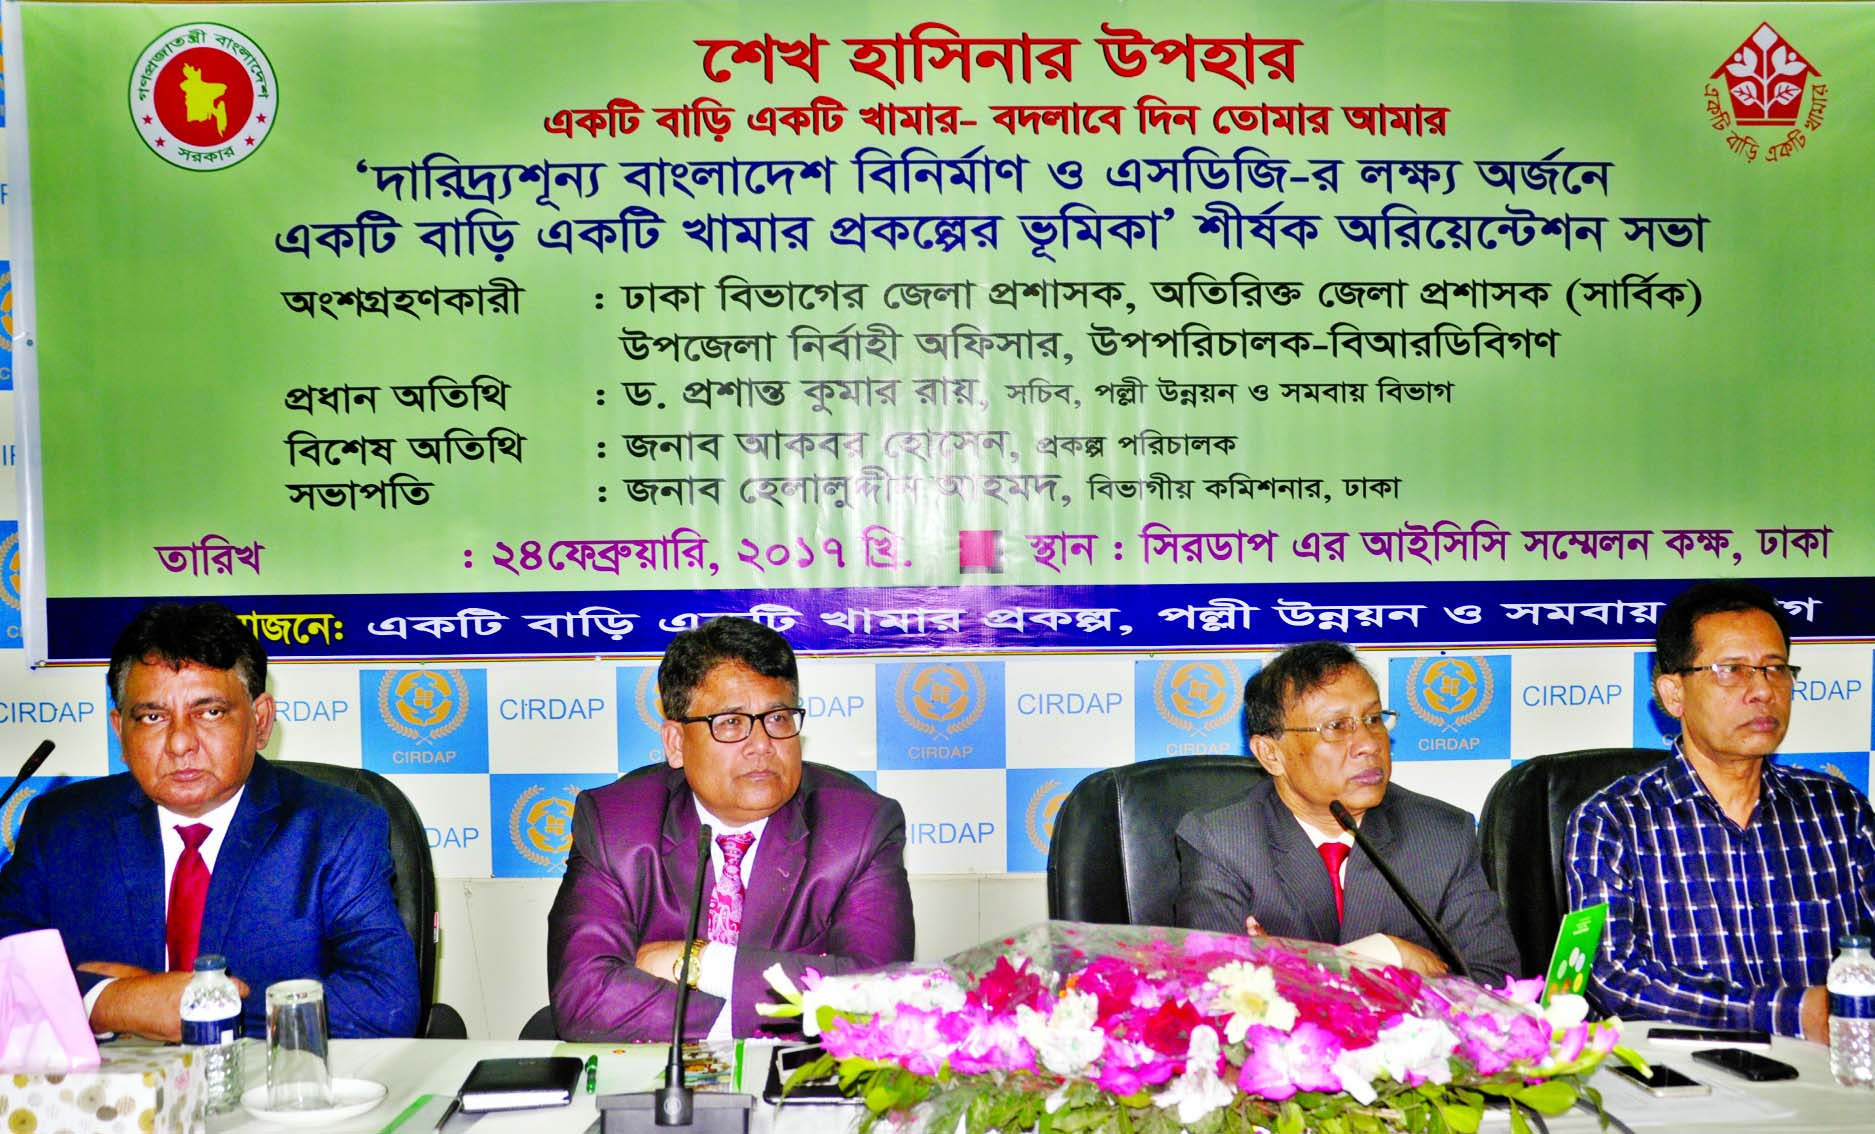 Secretary of Rural Development and Cooperatives Division Dr Proshanto Kumar Roy,  among others, at an orientation on